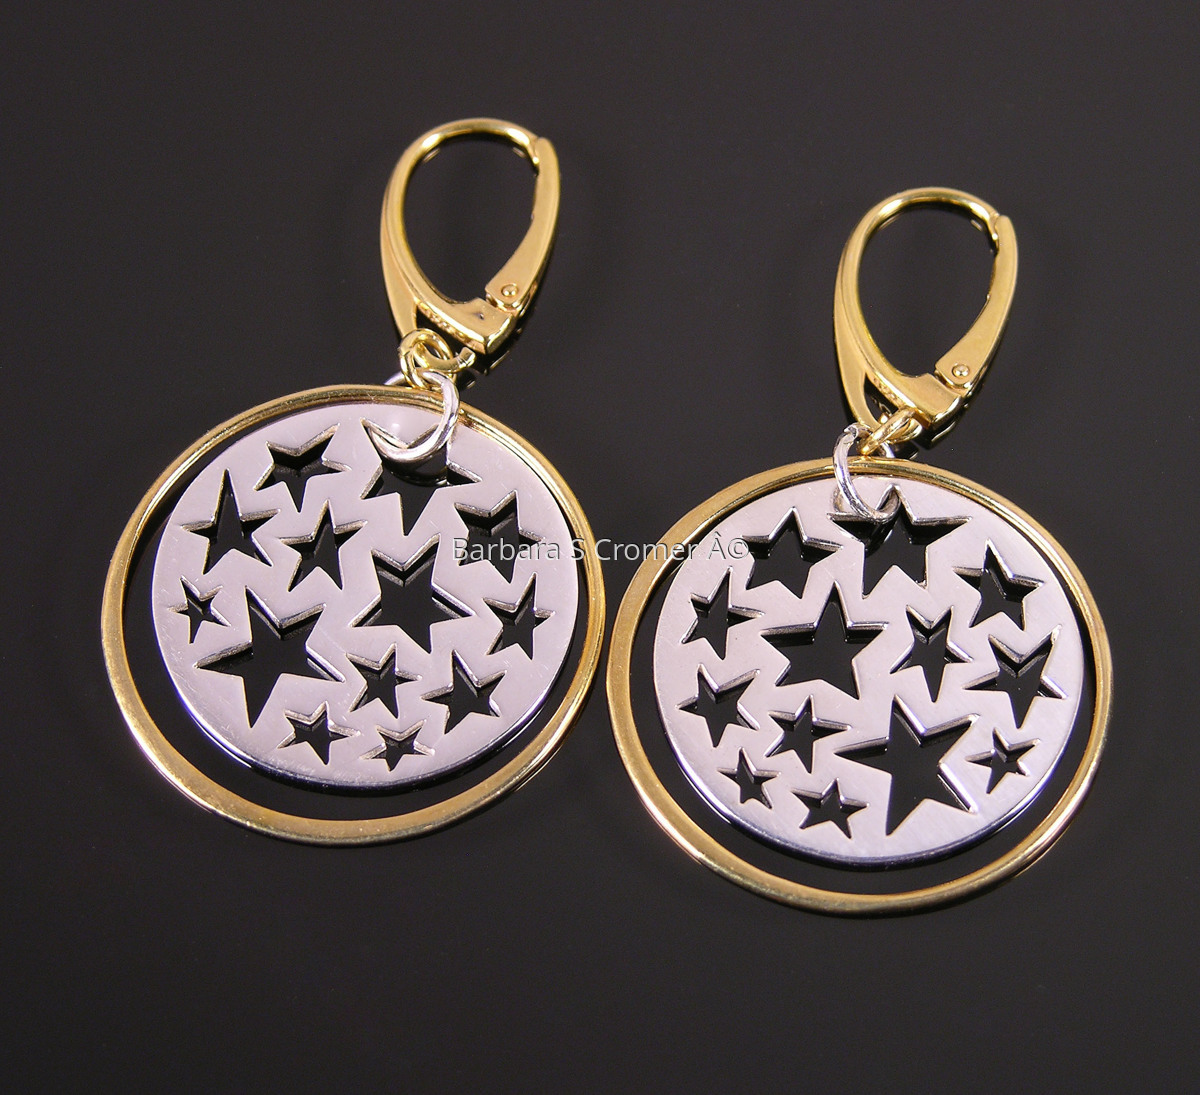 Golden ring around silver stars earrings (large view)